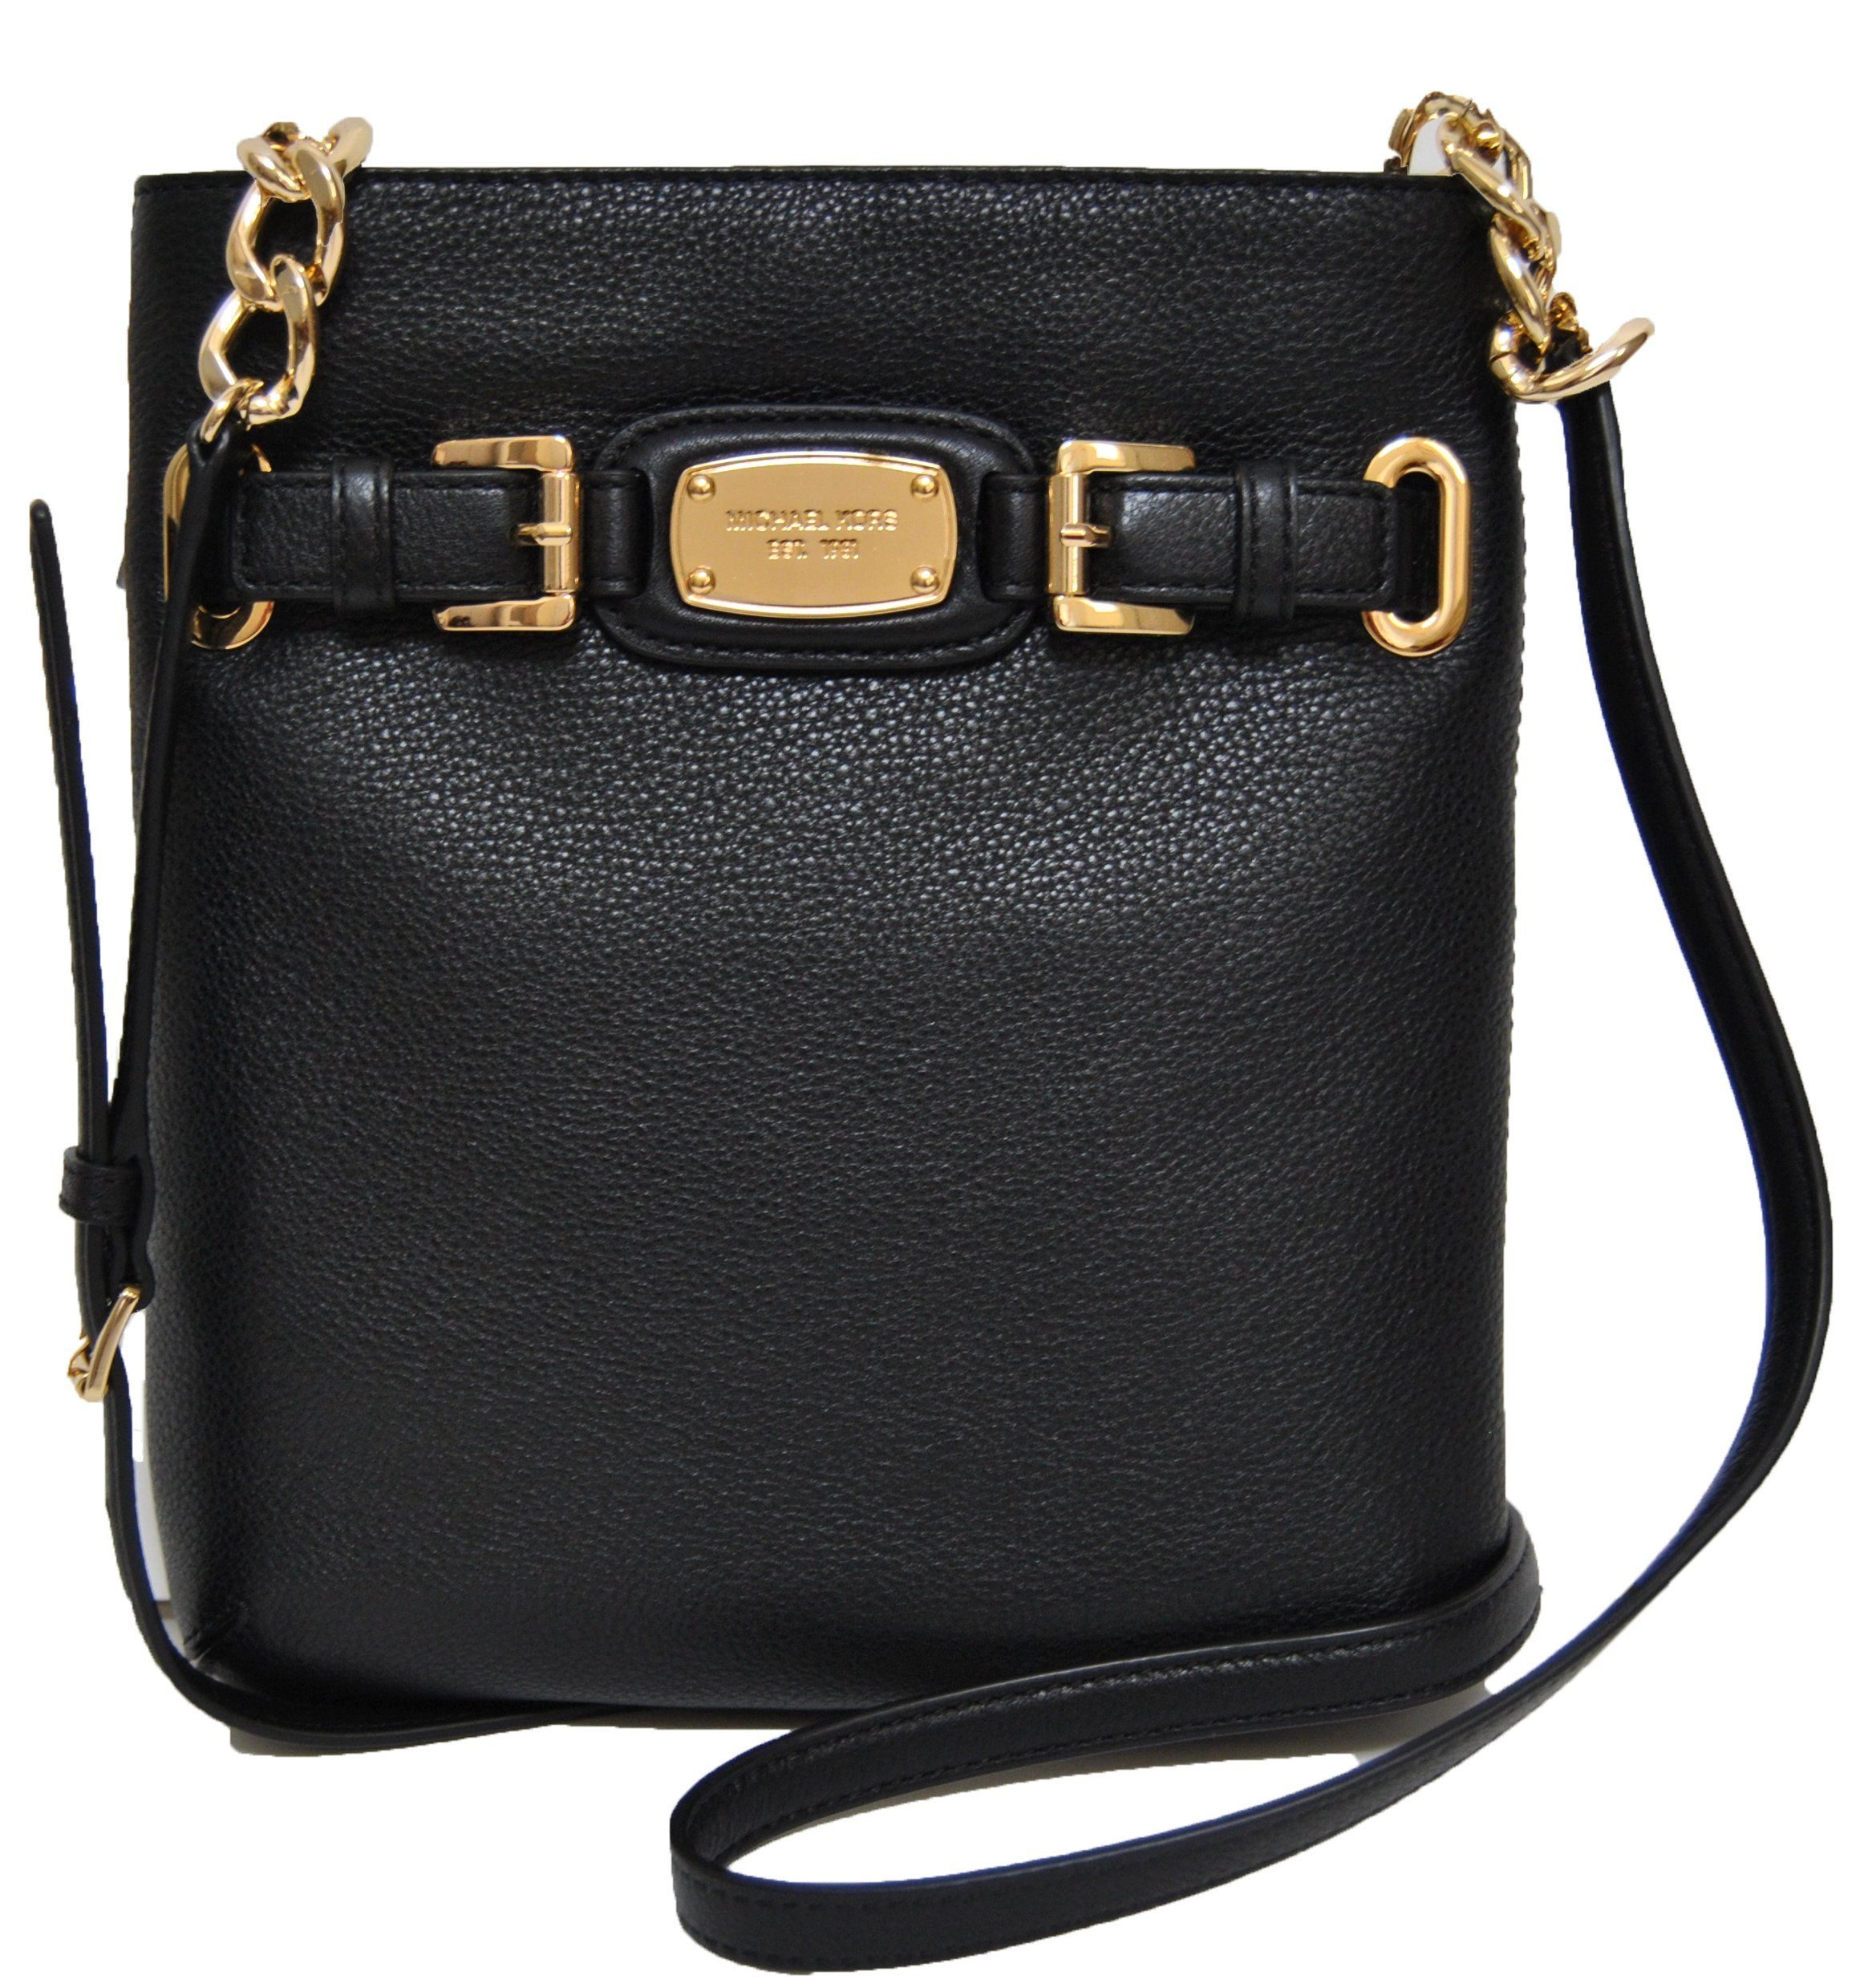 17b72cce72ce Michael Kors Hamilton Large Crossbody Black Leather: Handbags: Amazon.com